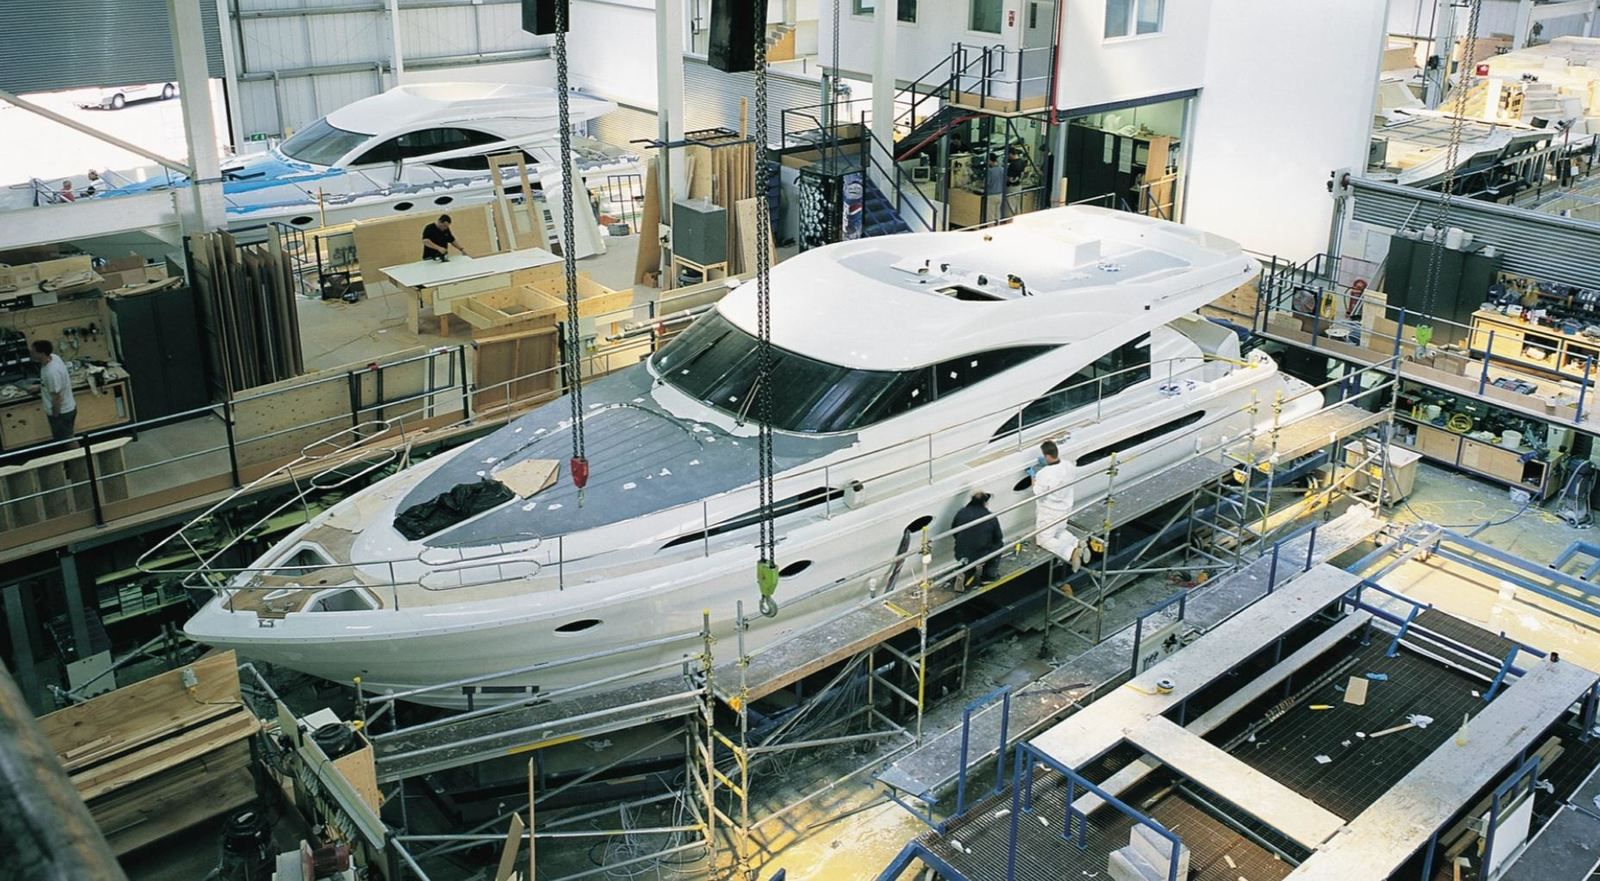 Fairline Yacht announces 240 job cuts